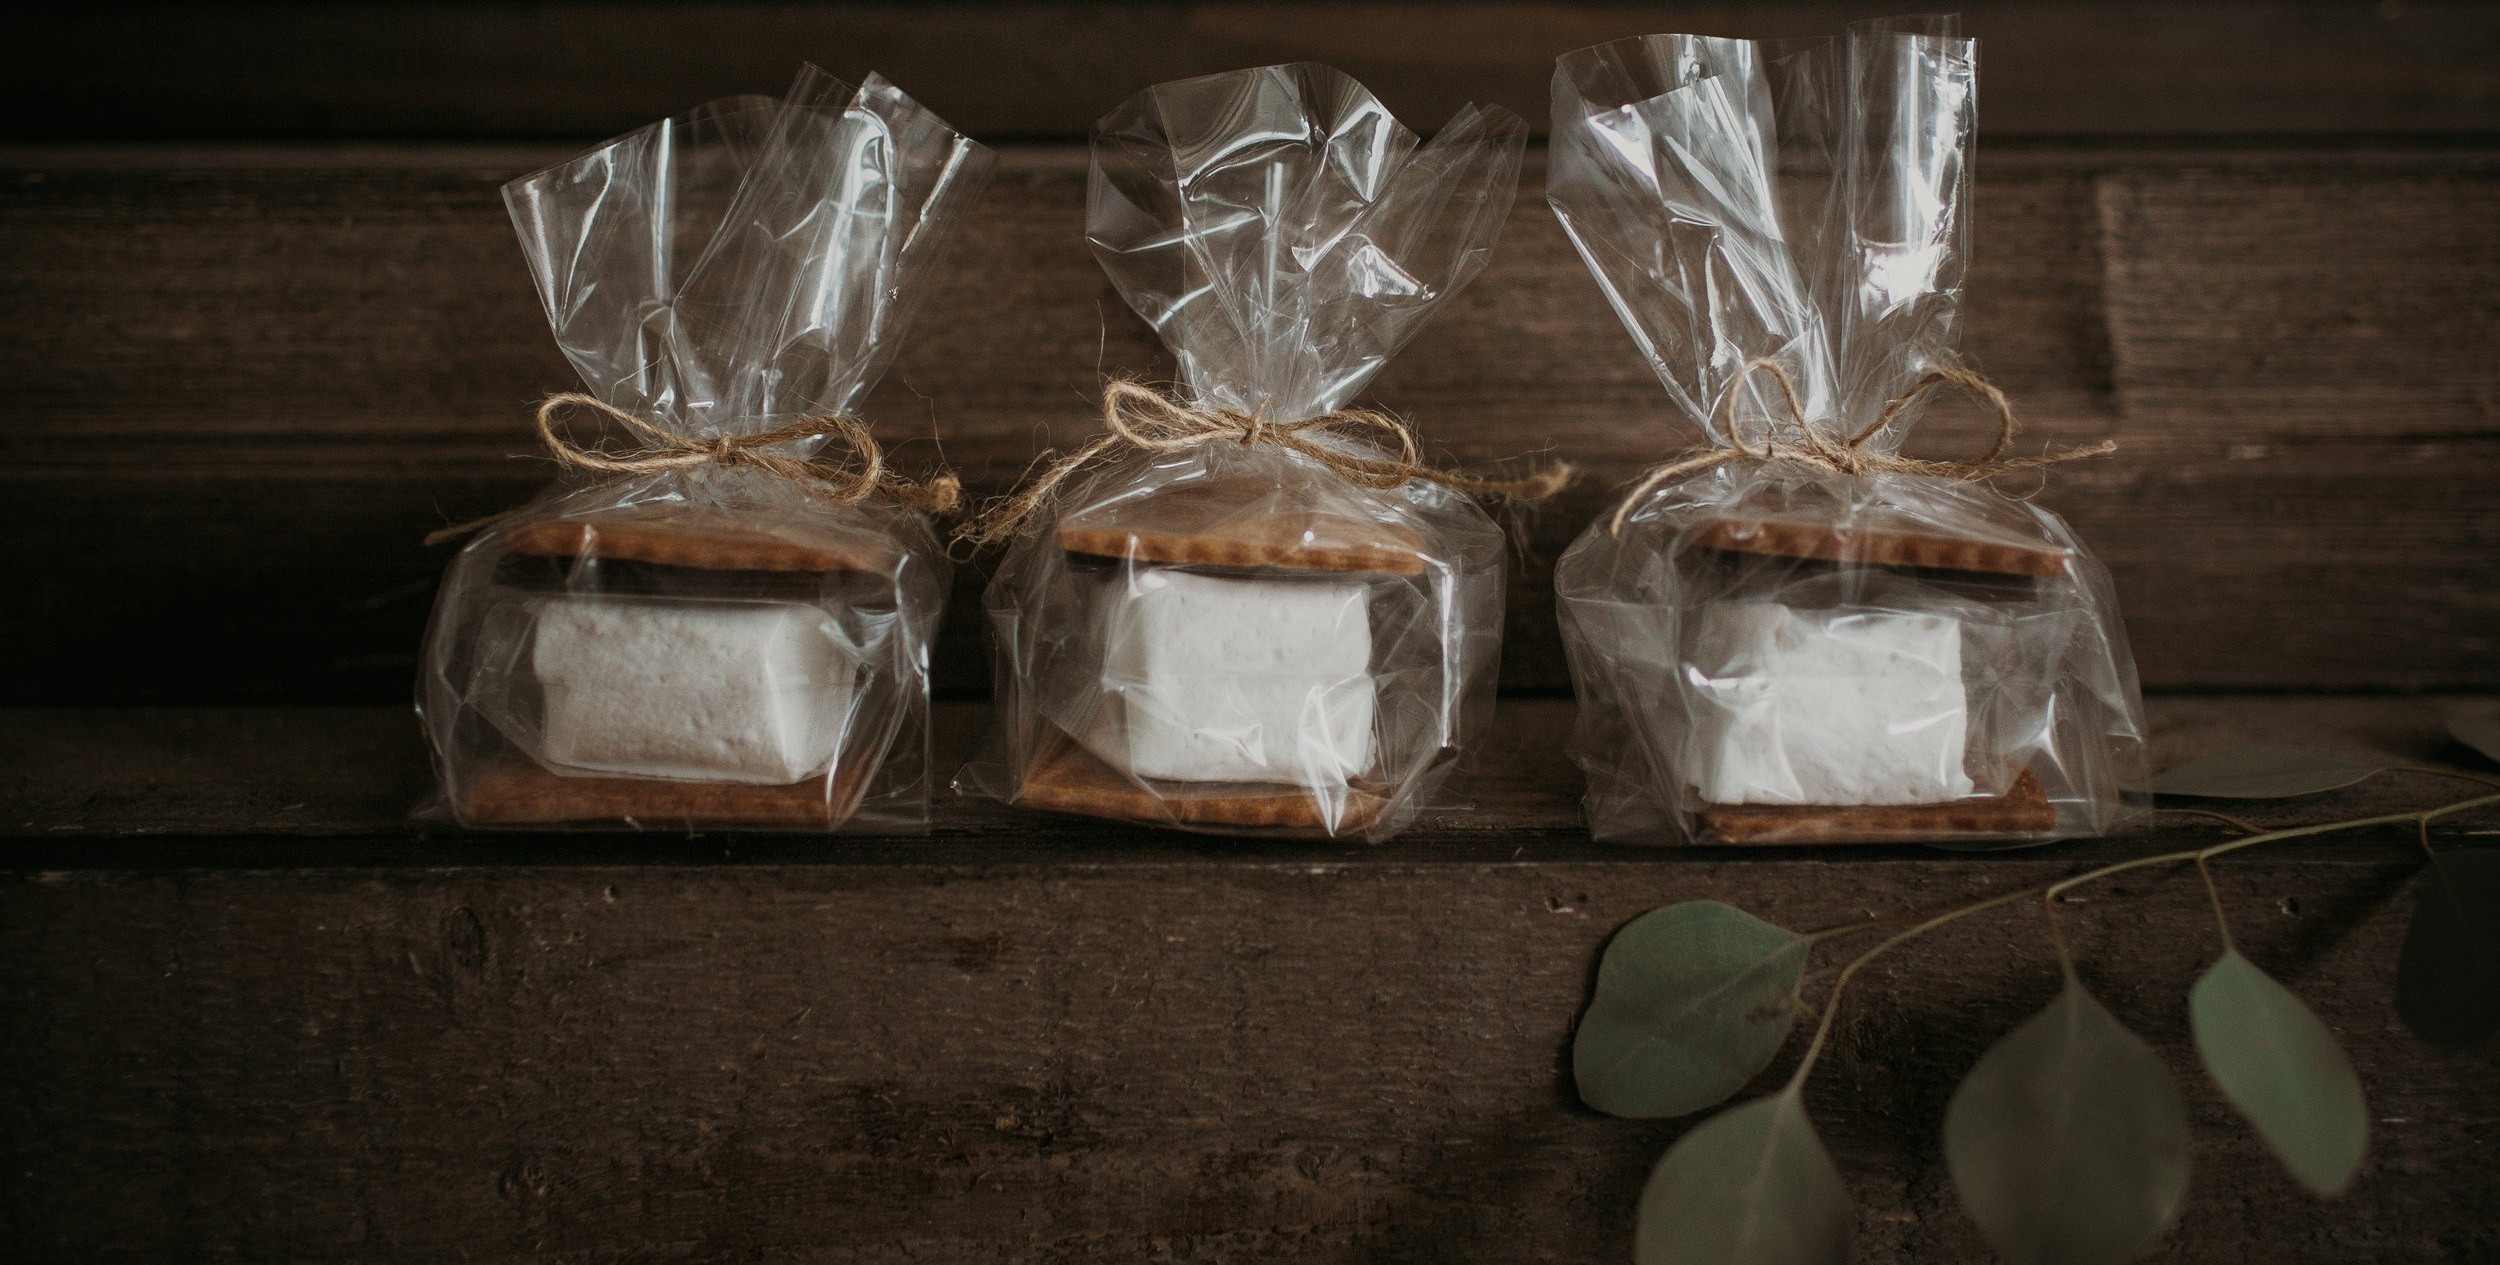 s'mores favors - we package individual s'mores for all your guests